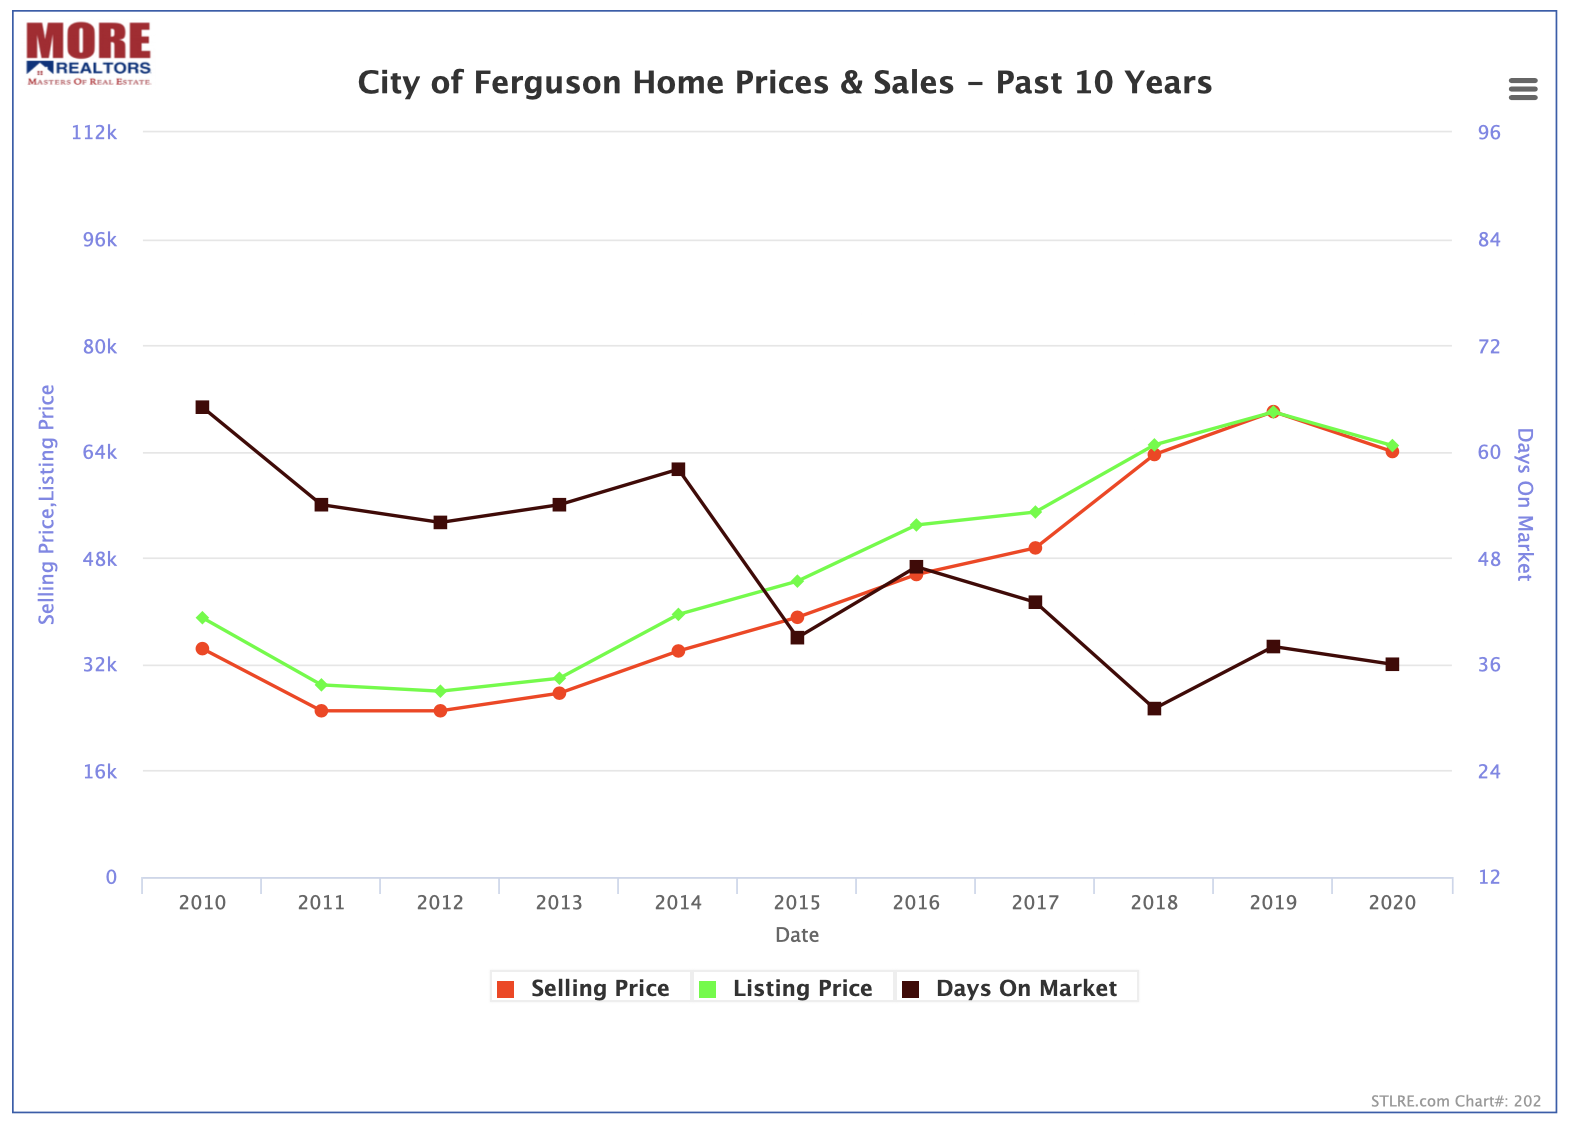 City of Ferguson Home Prices & Sales - Past 10 Years